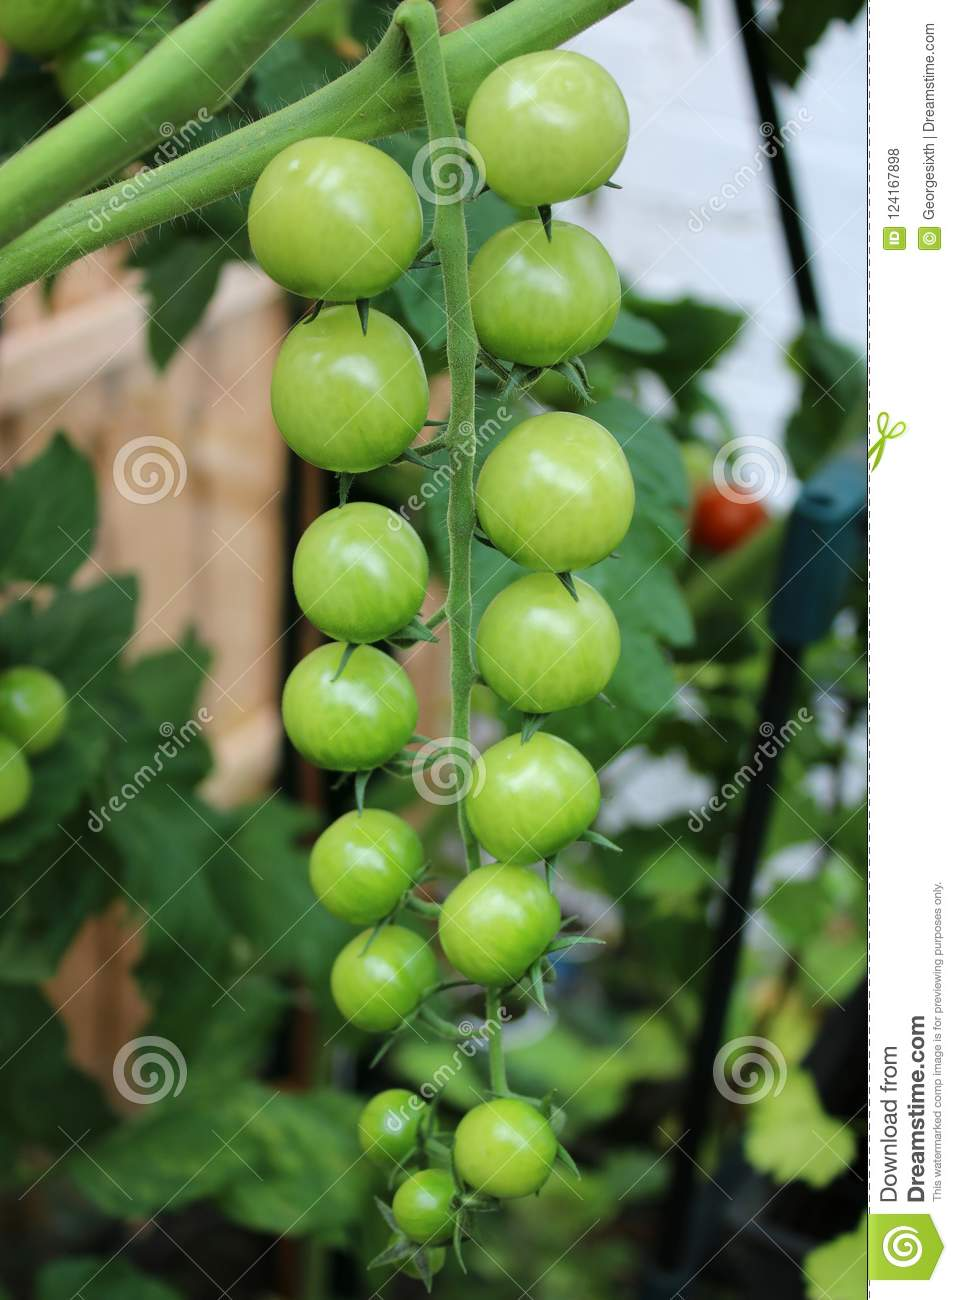 Truss of green tomatoes on a cherry tomato plant